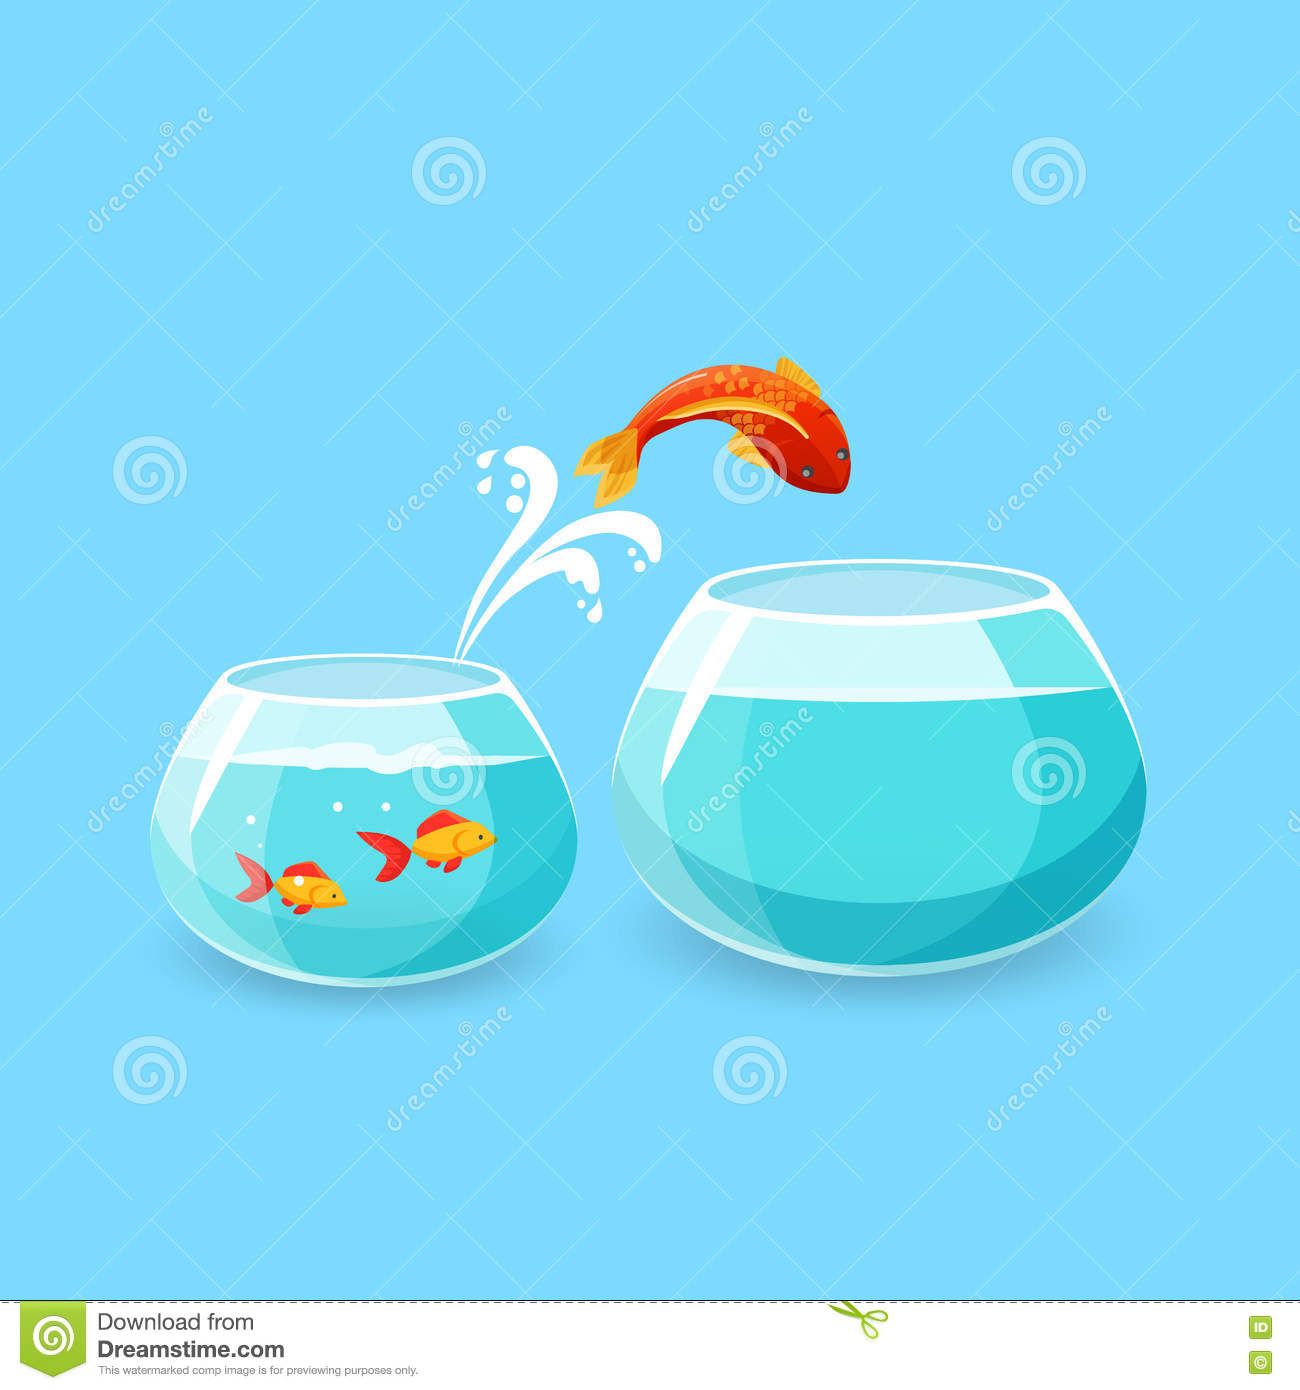 hight resolution of ambition and challenge concept goldfish escape